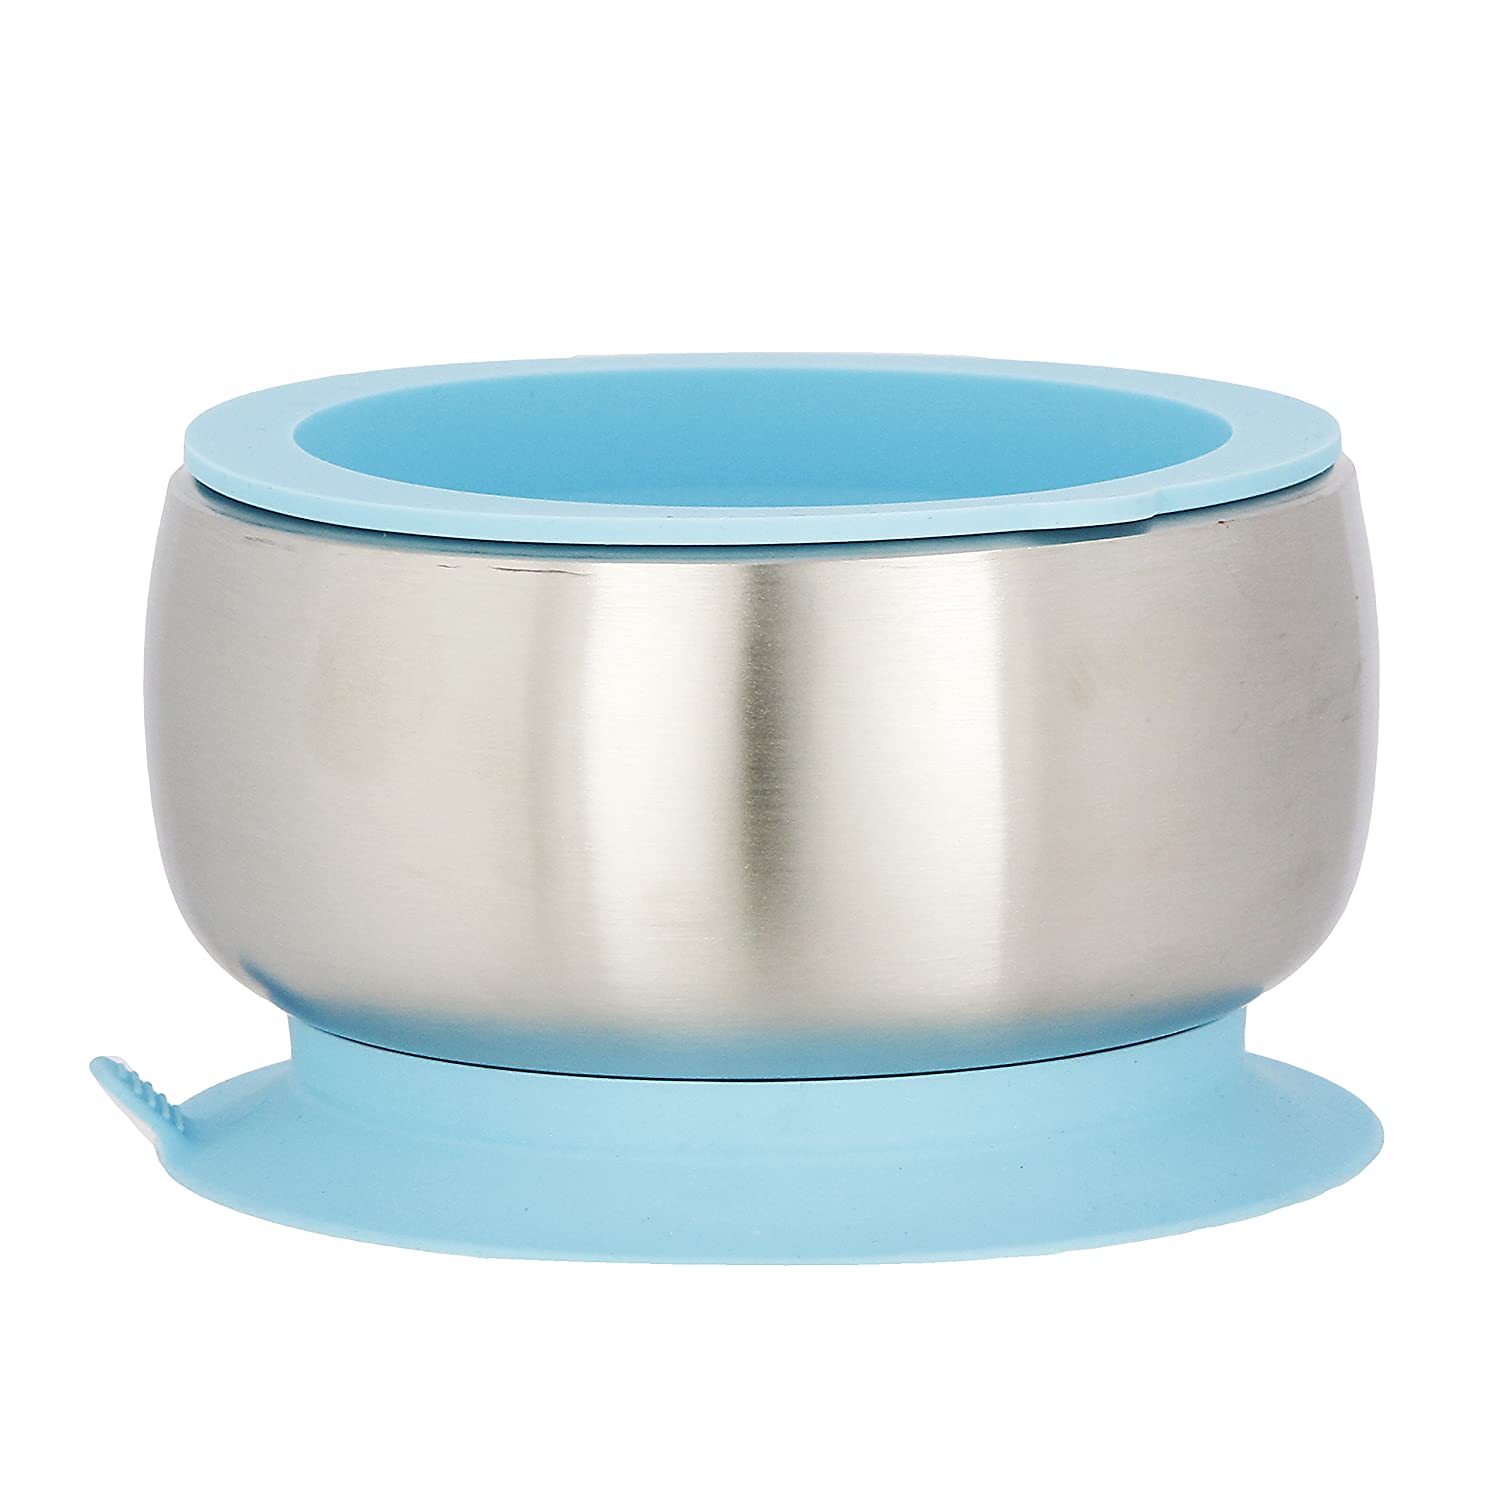 9 Best Baby Bowls and Plates Reviews in 2021 Parent Should Choose 15